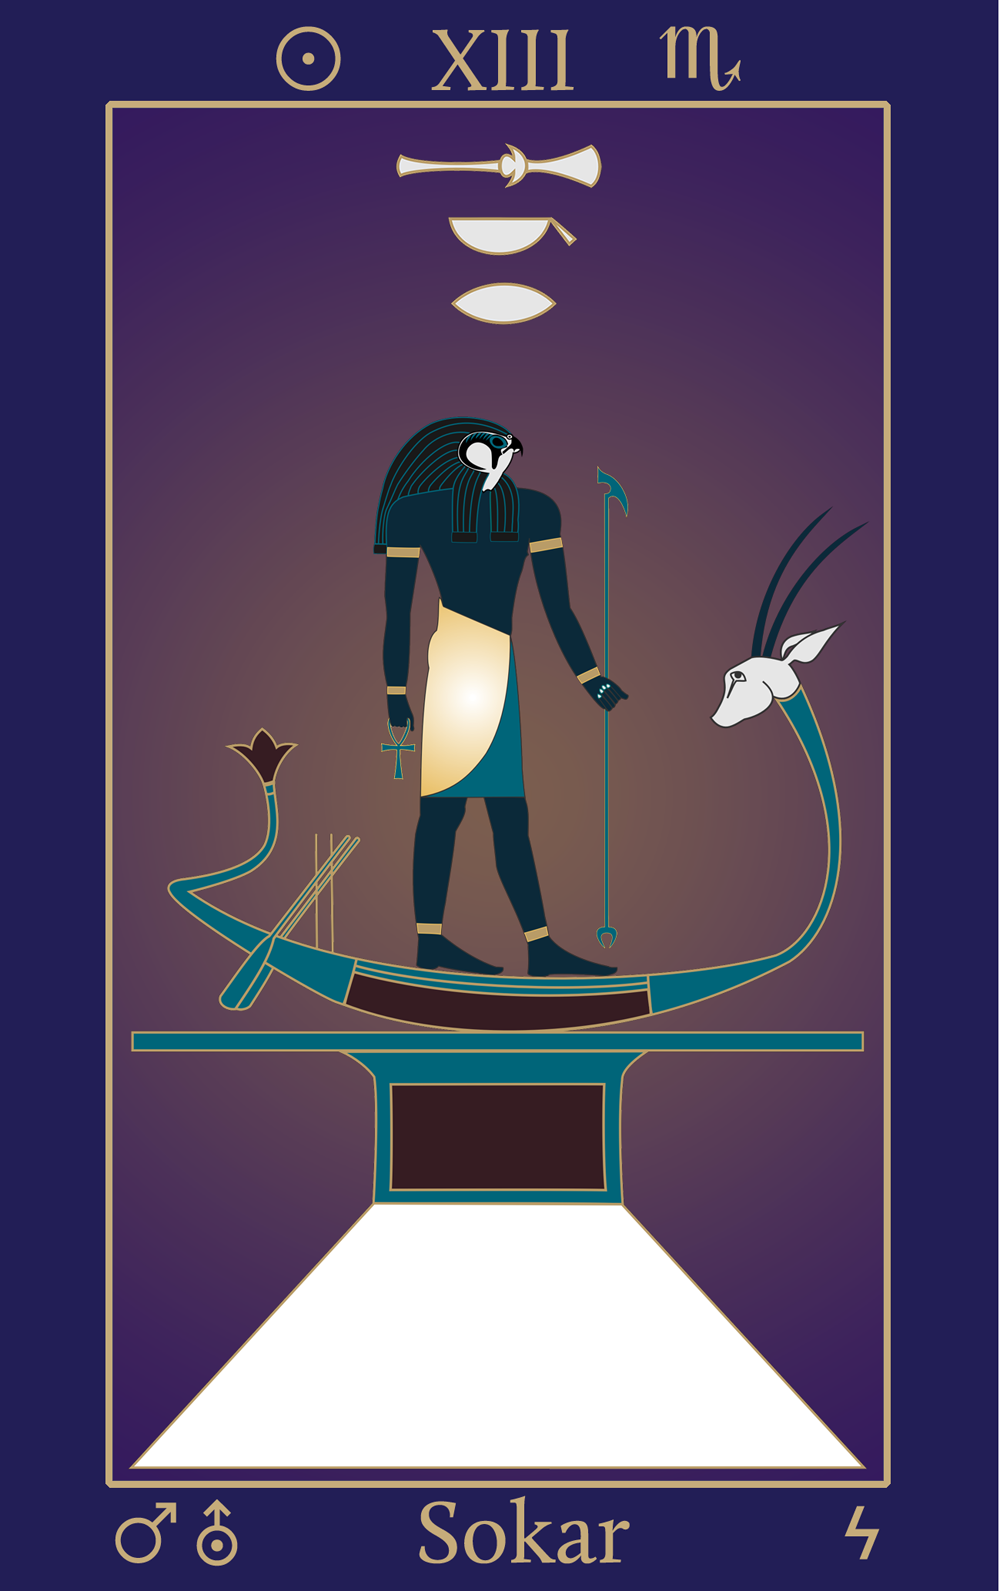 Egyptian Tarot of Thelema Sokar XIII